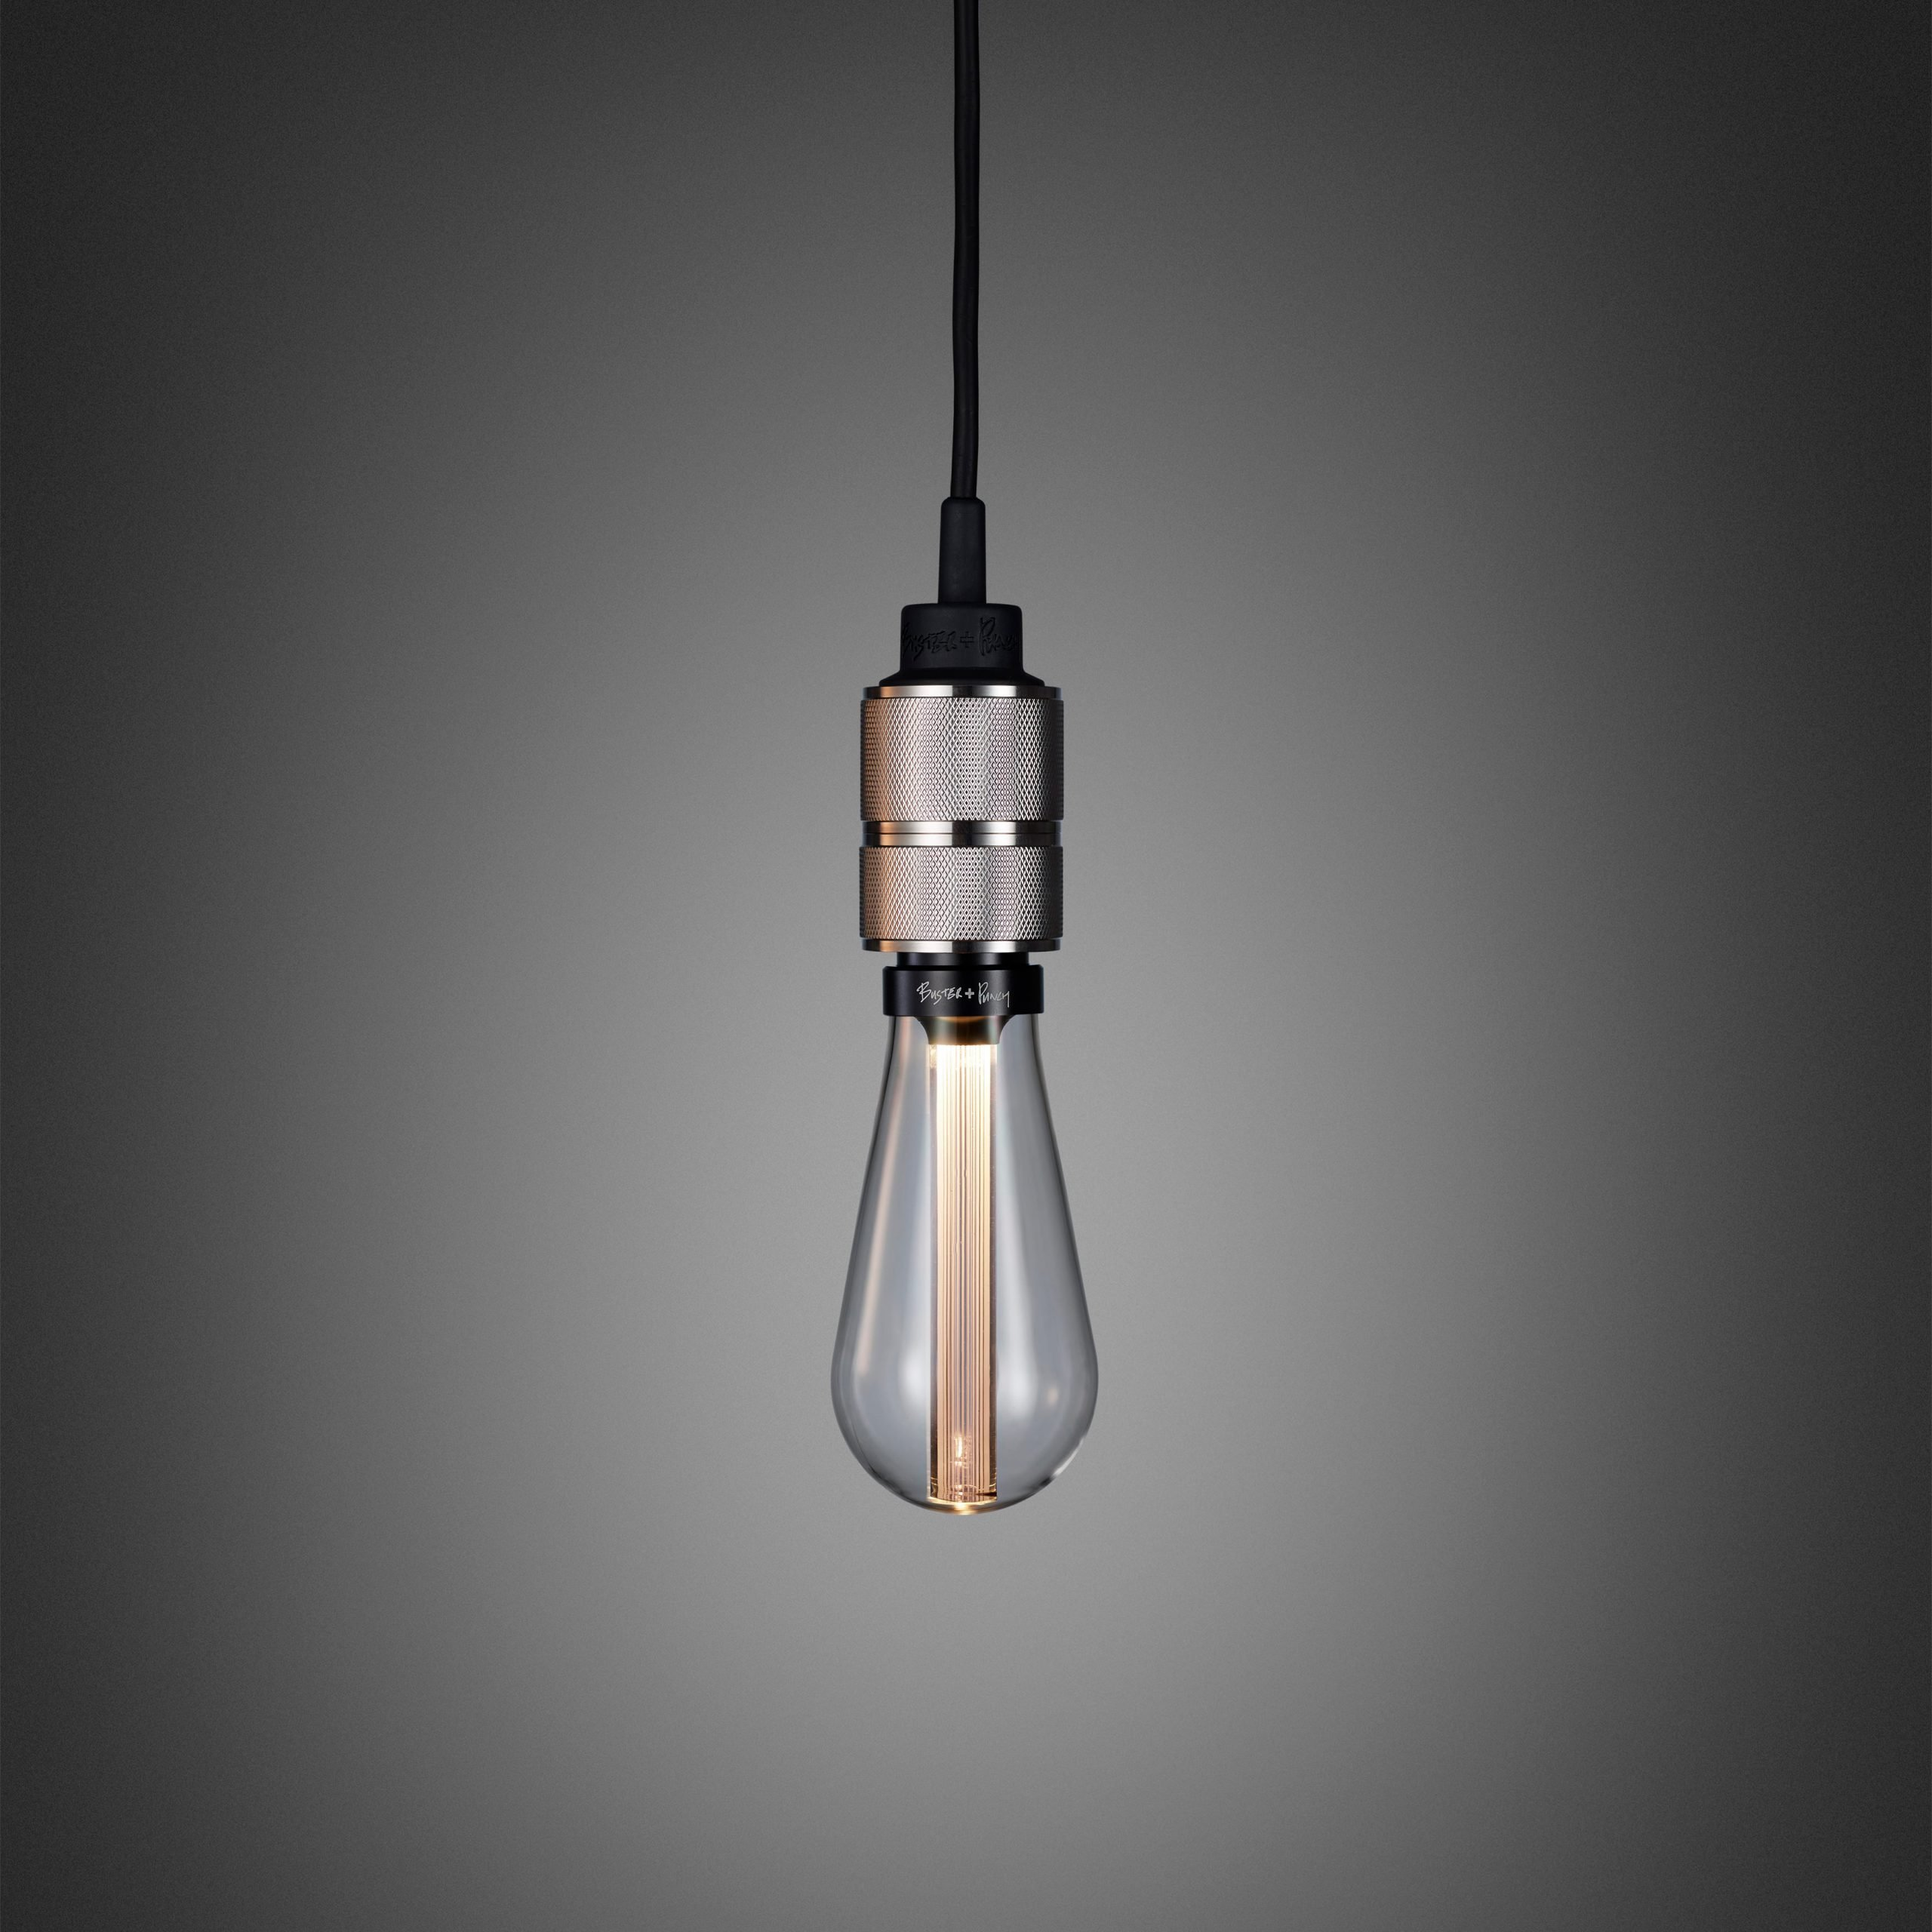 2. Buster+Punch_Hooked_1.0_Nude_Steel_Crystal_Bulb_Detail_1